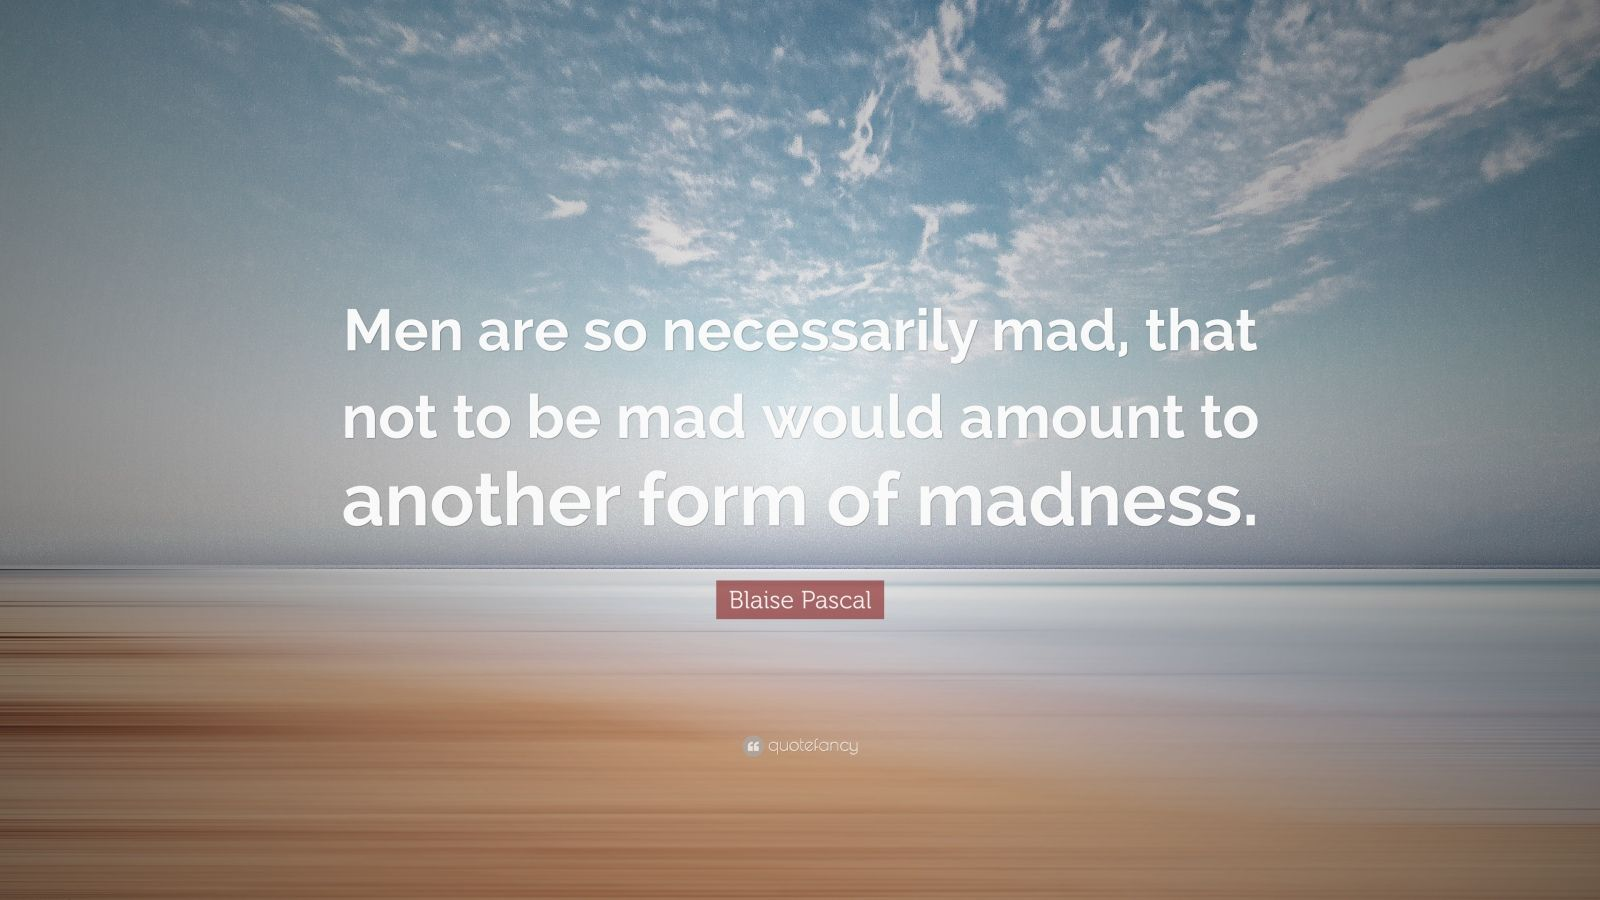 """Blaise Pascal Quote: """"Men are so necessarily mad, that not to be mad would amount to another form of madness."""""""